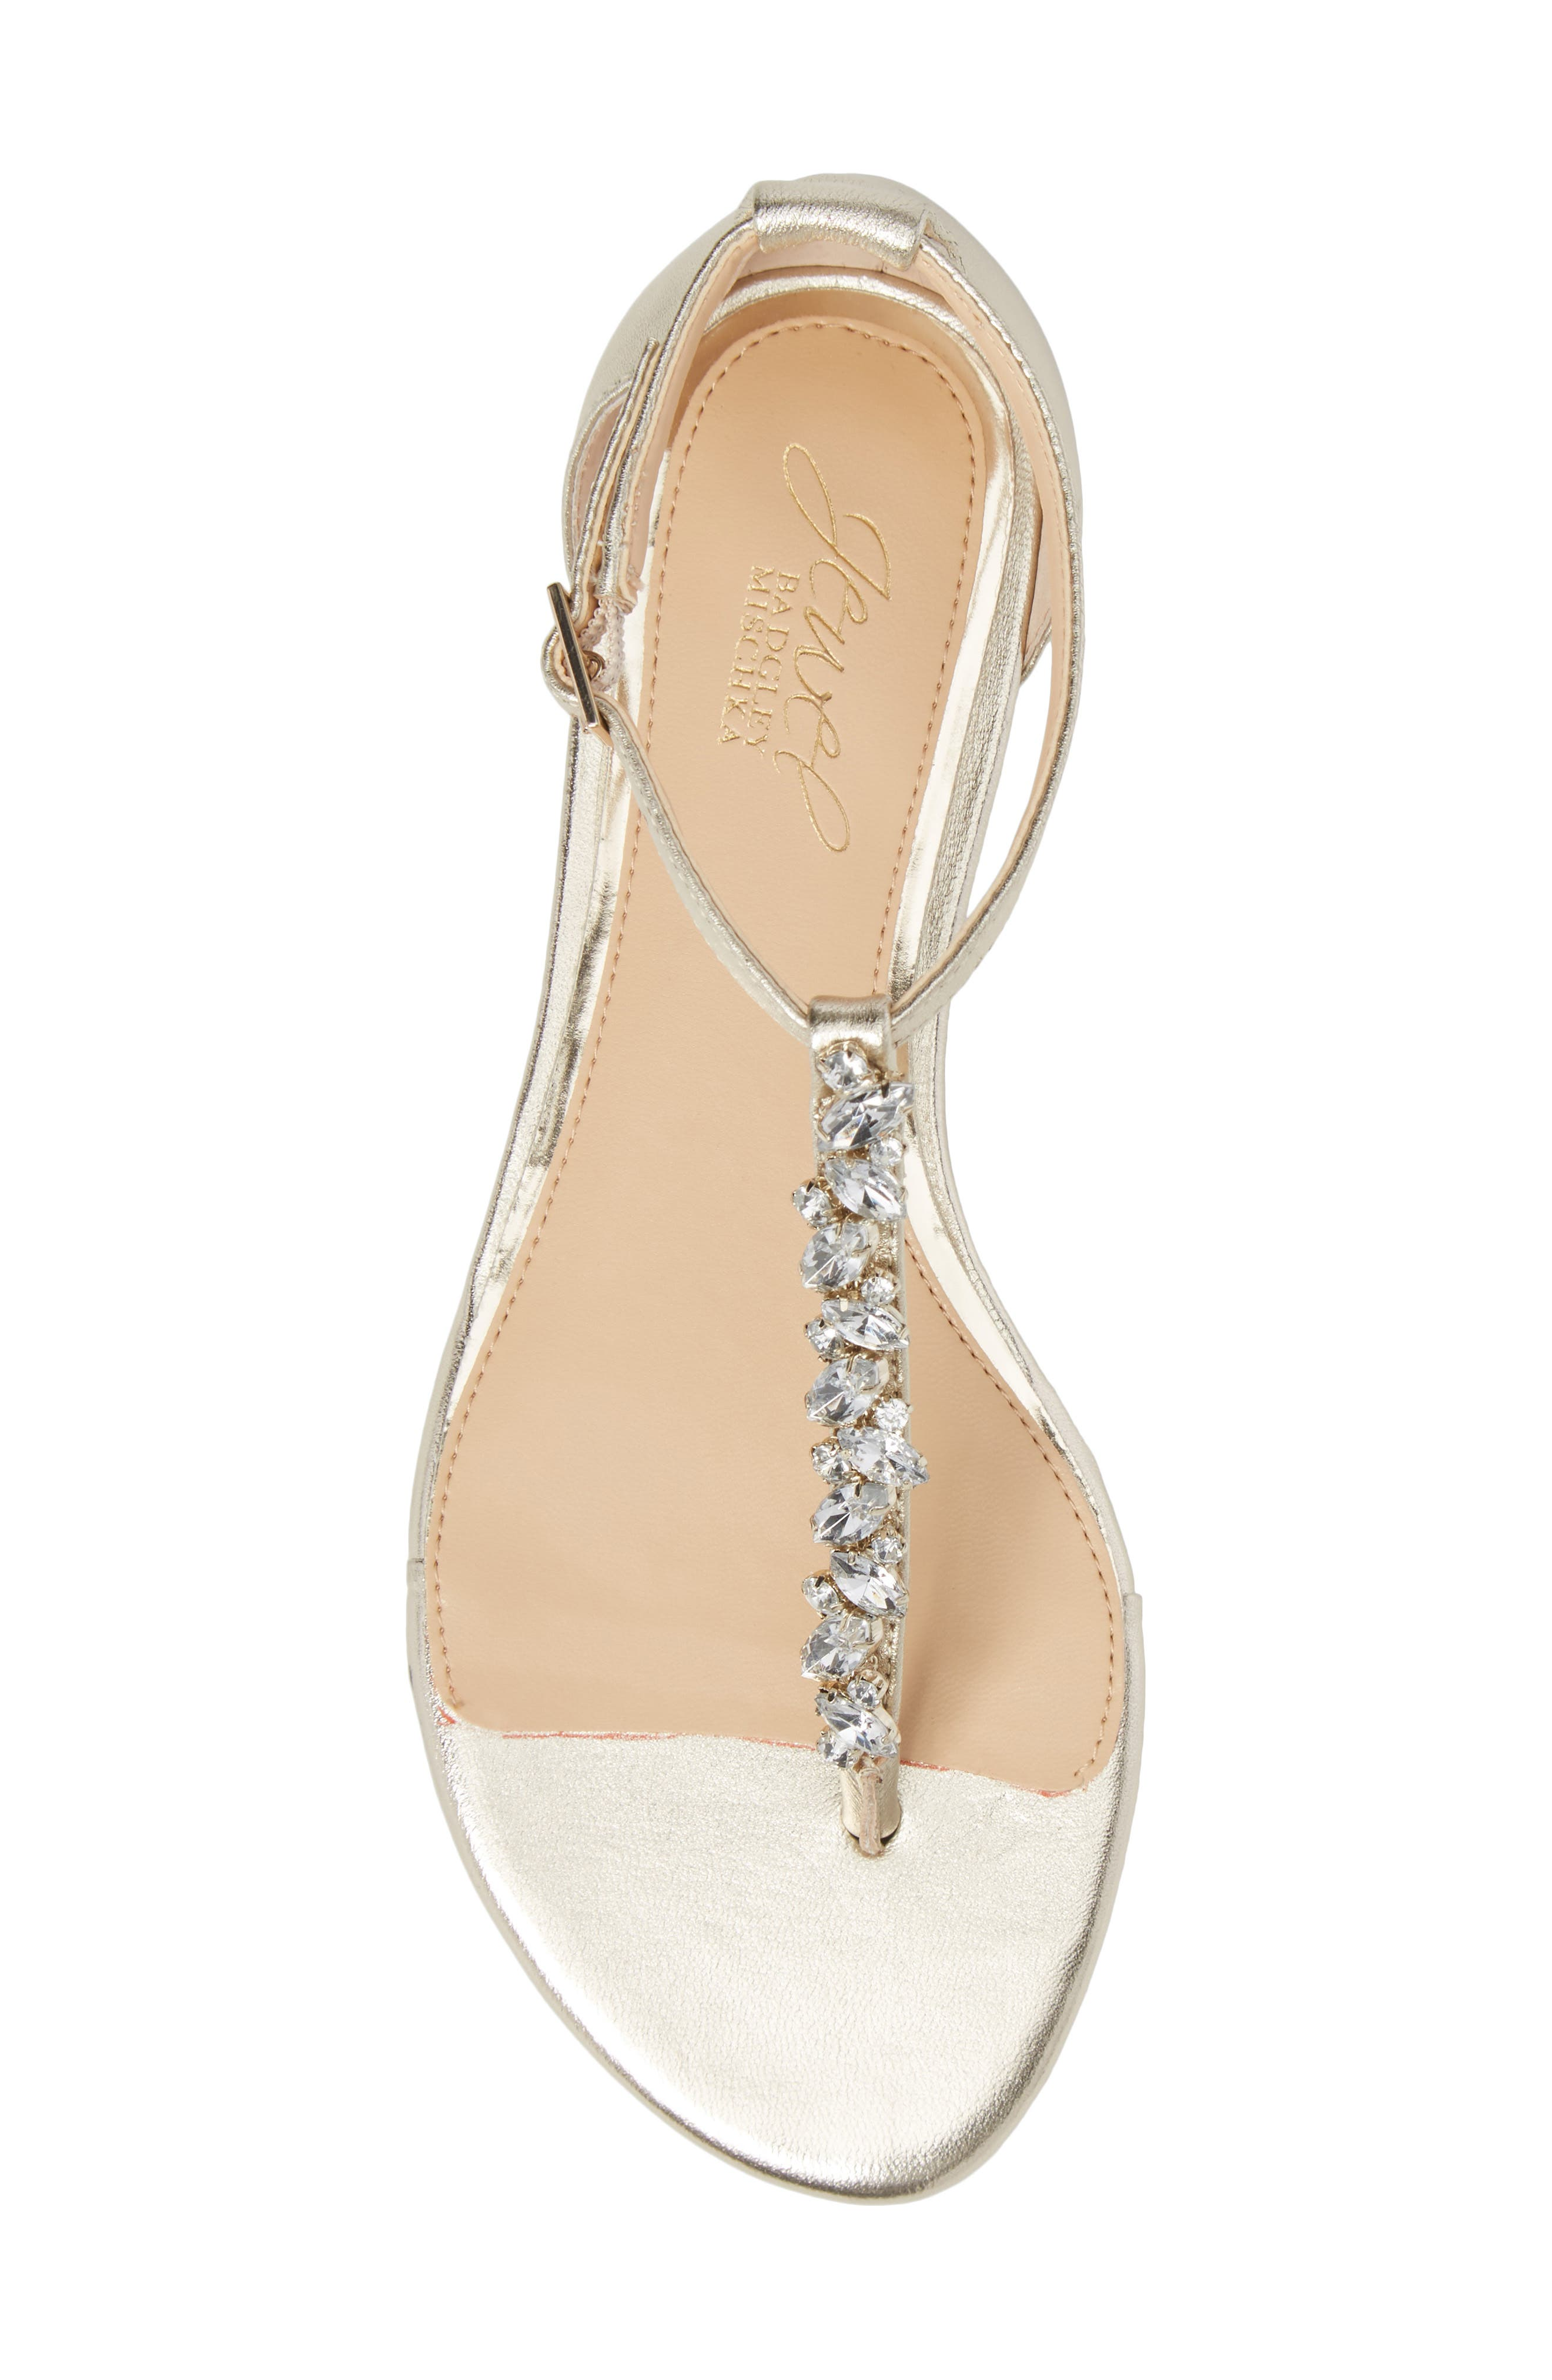 Carrol Embellished T-Strap Sandal,                             Alternate thumbnail 5, color,                             GOLD METALLIC LEATHER